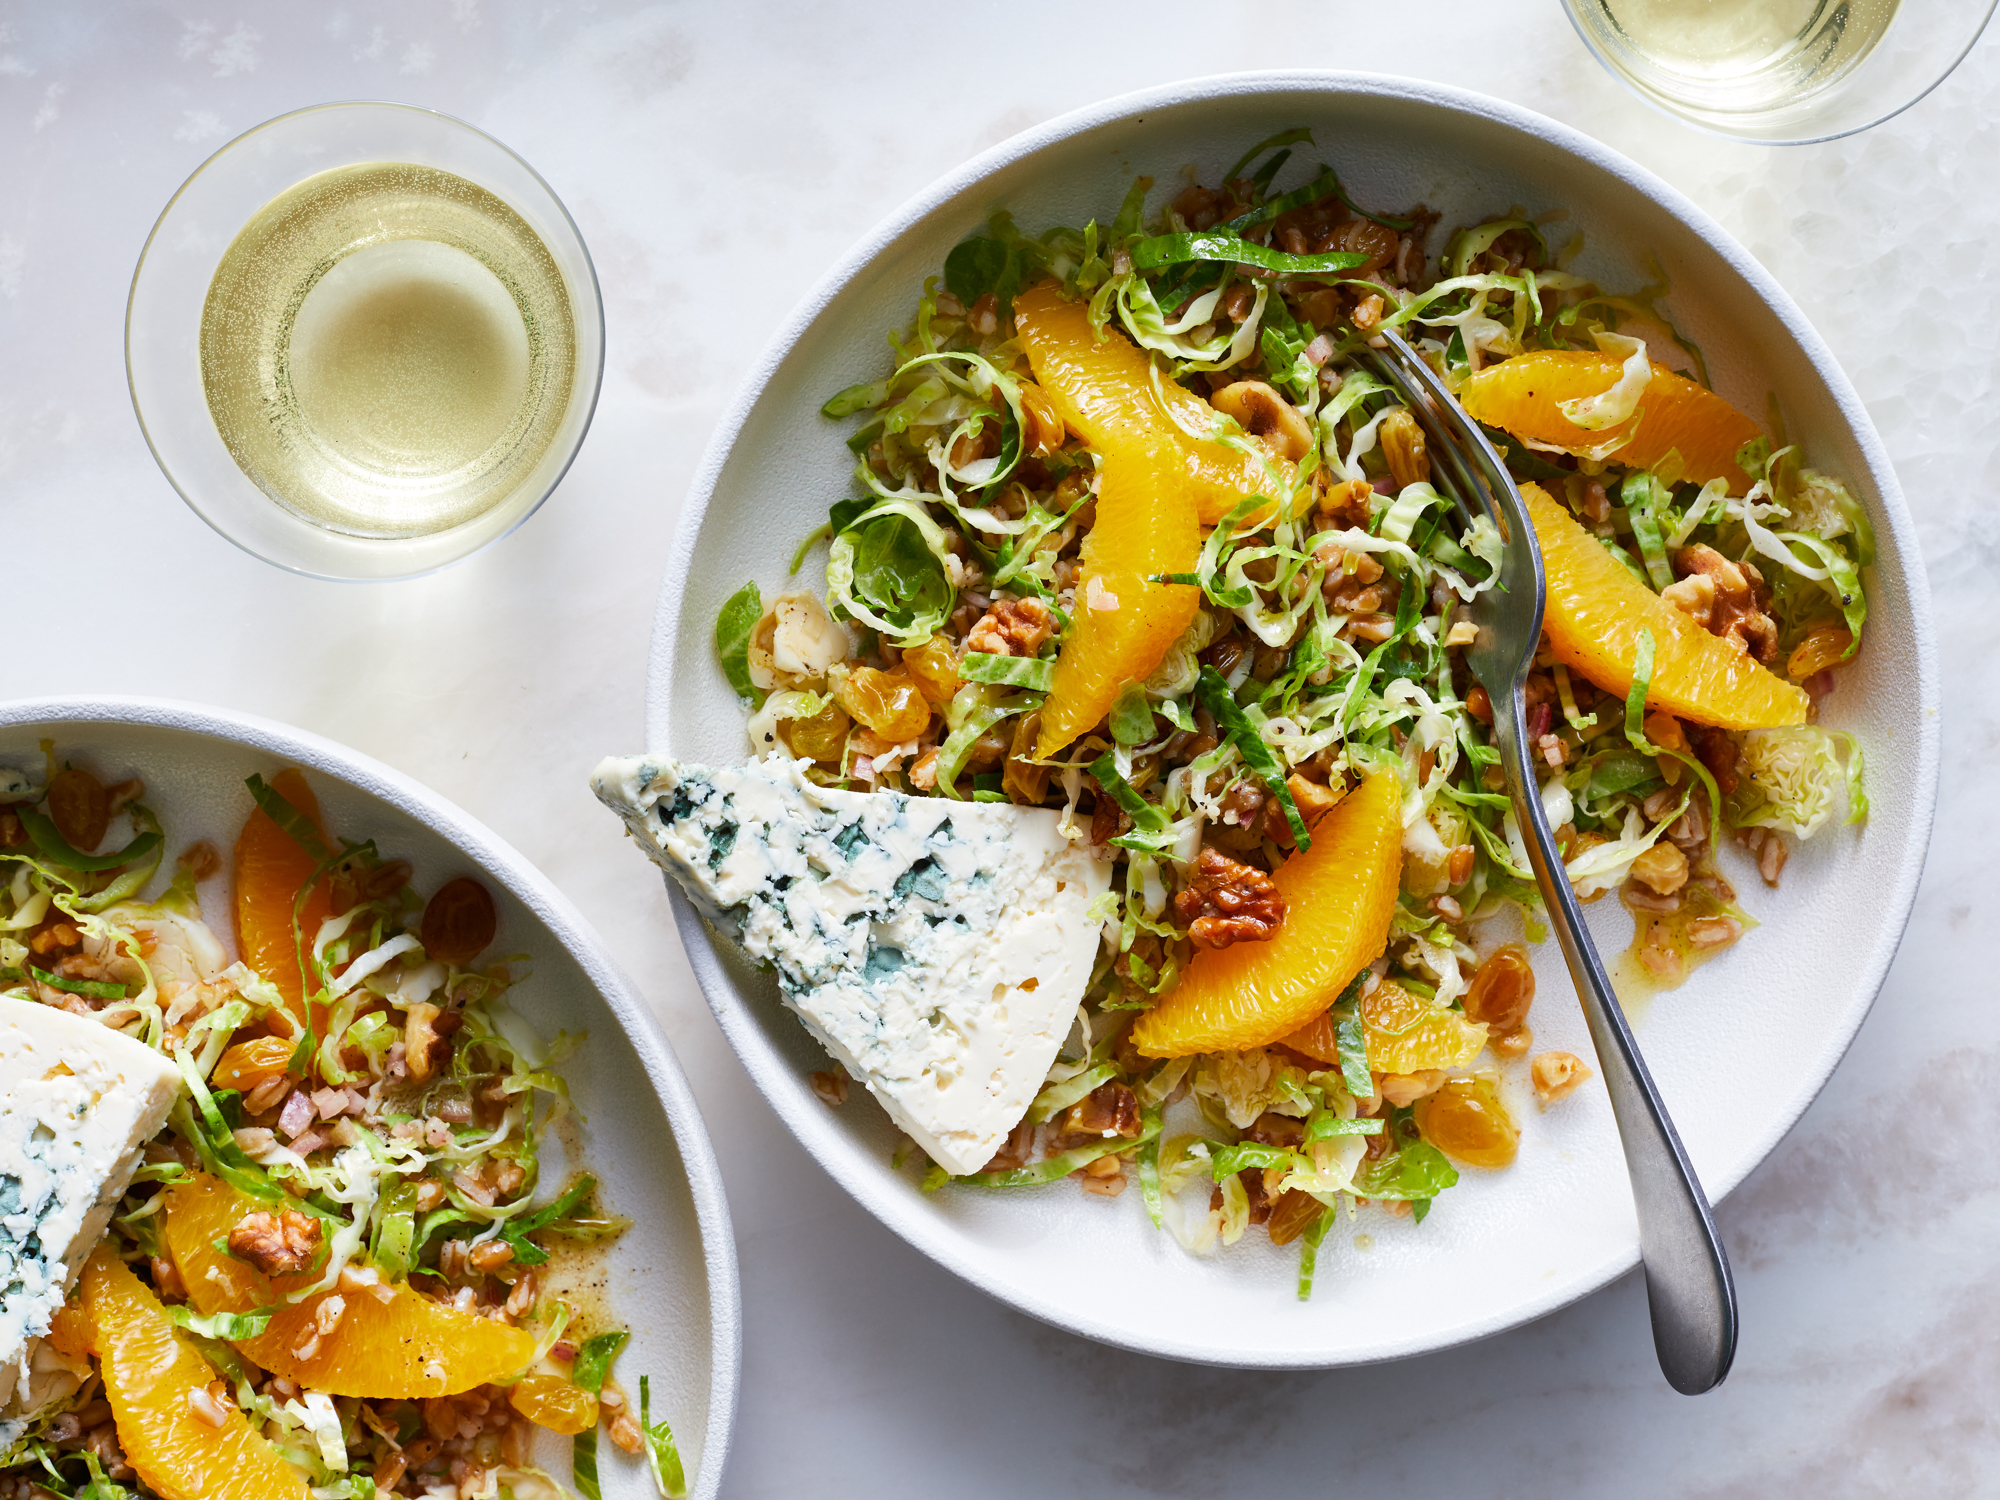 Restoration Salad with Farro, Orange, and Blue Cheese